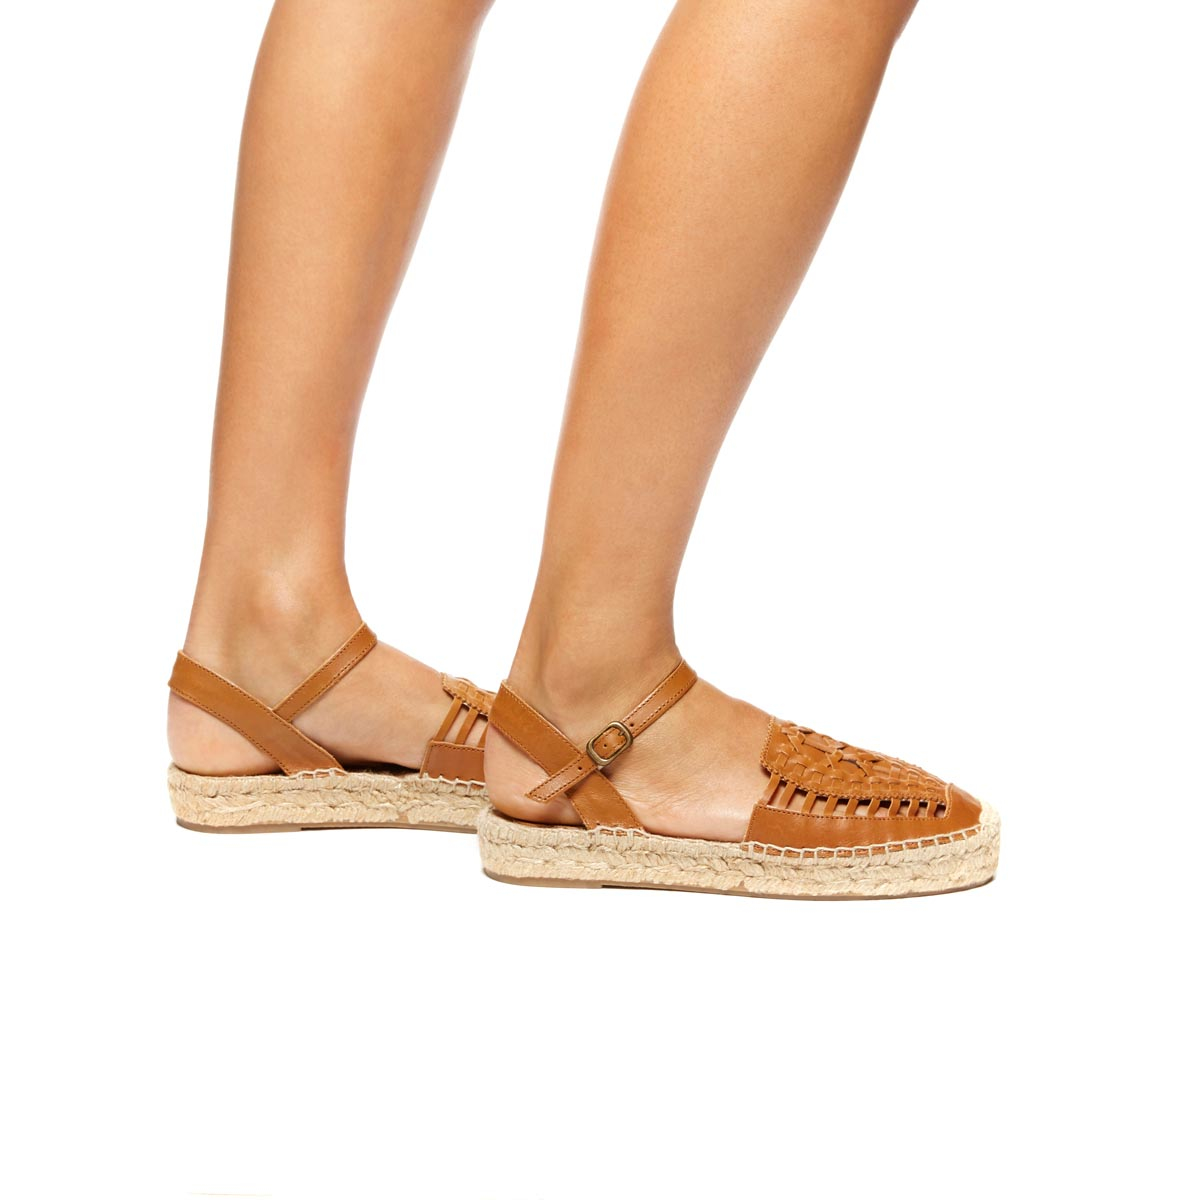 0871633b2956 Lyst - Soludos Leather Platform Huarache Sandal in Brown